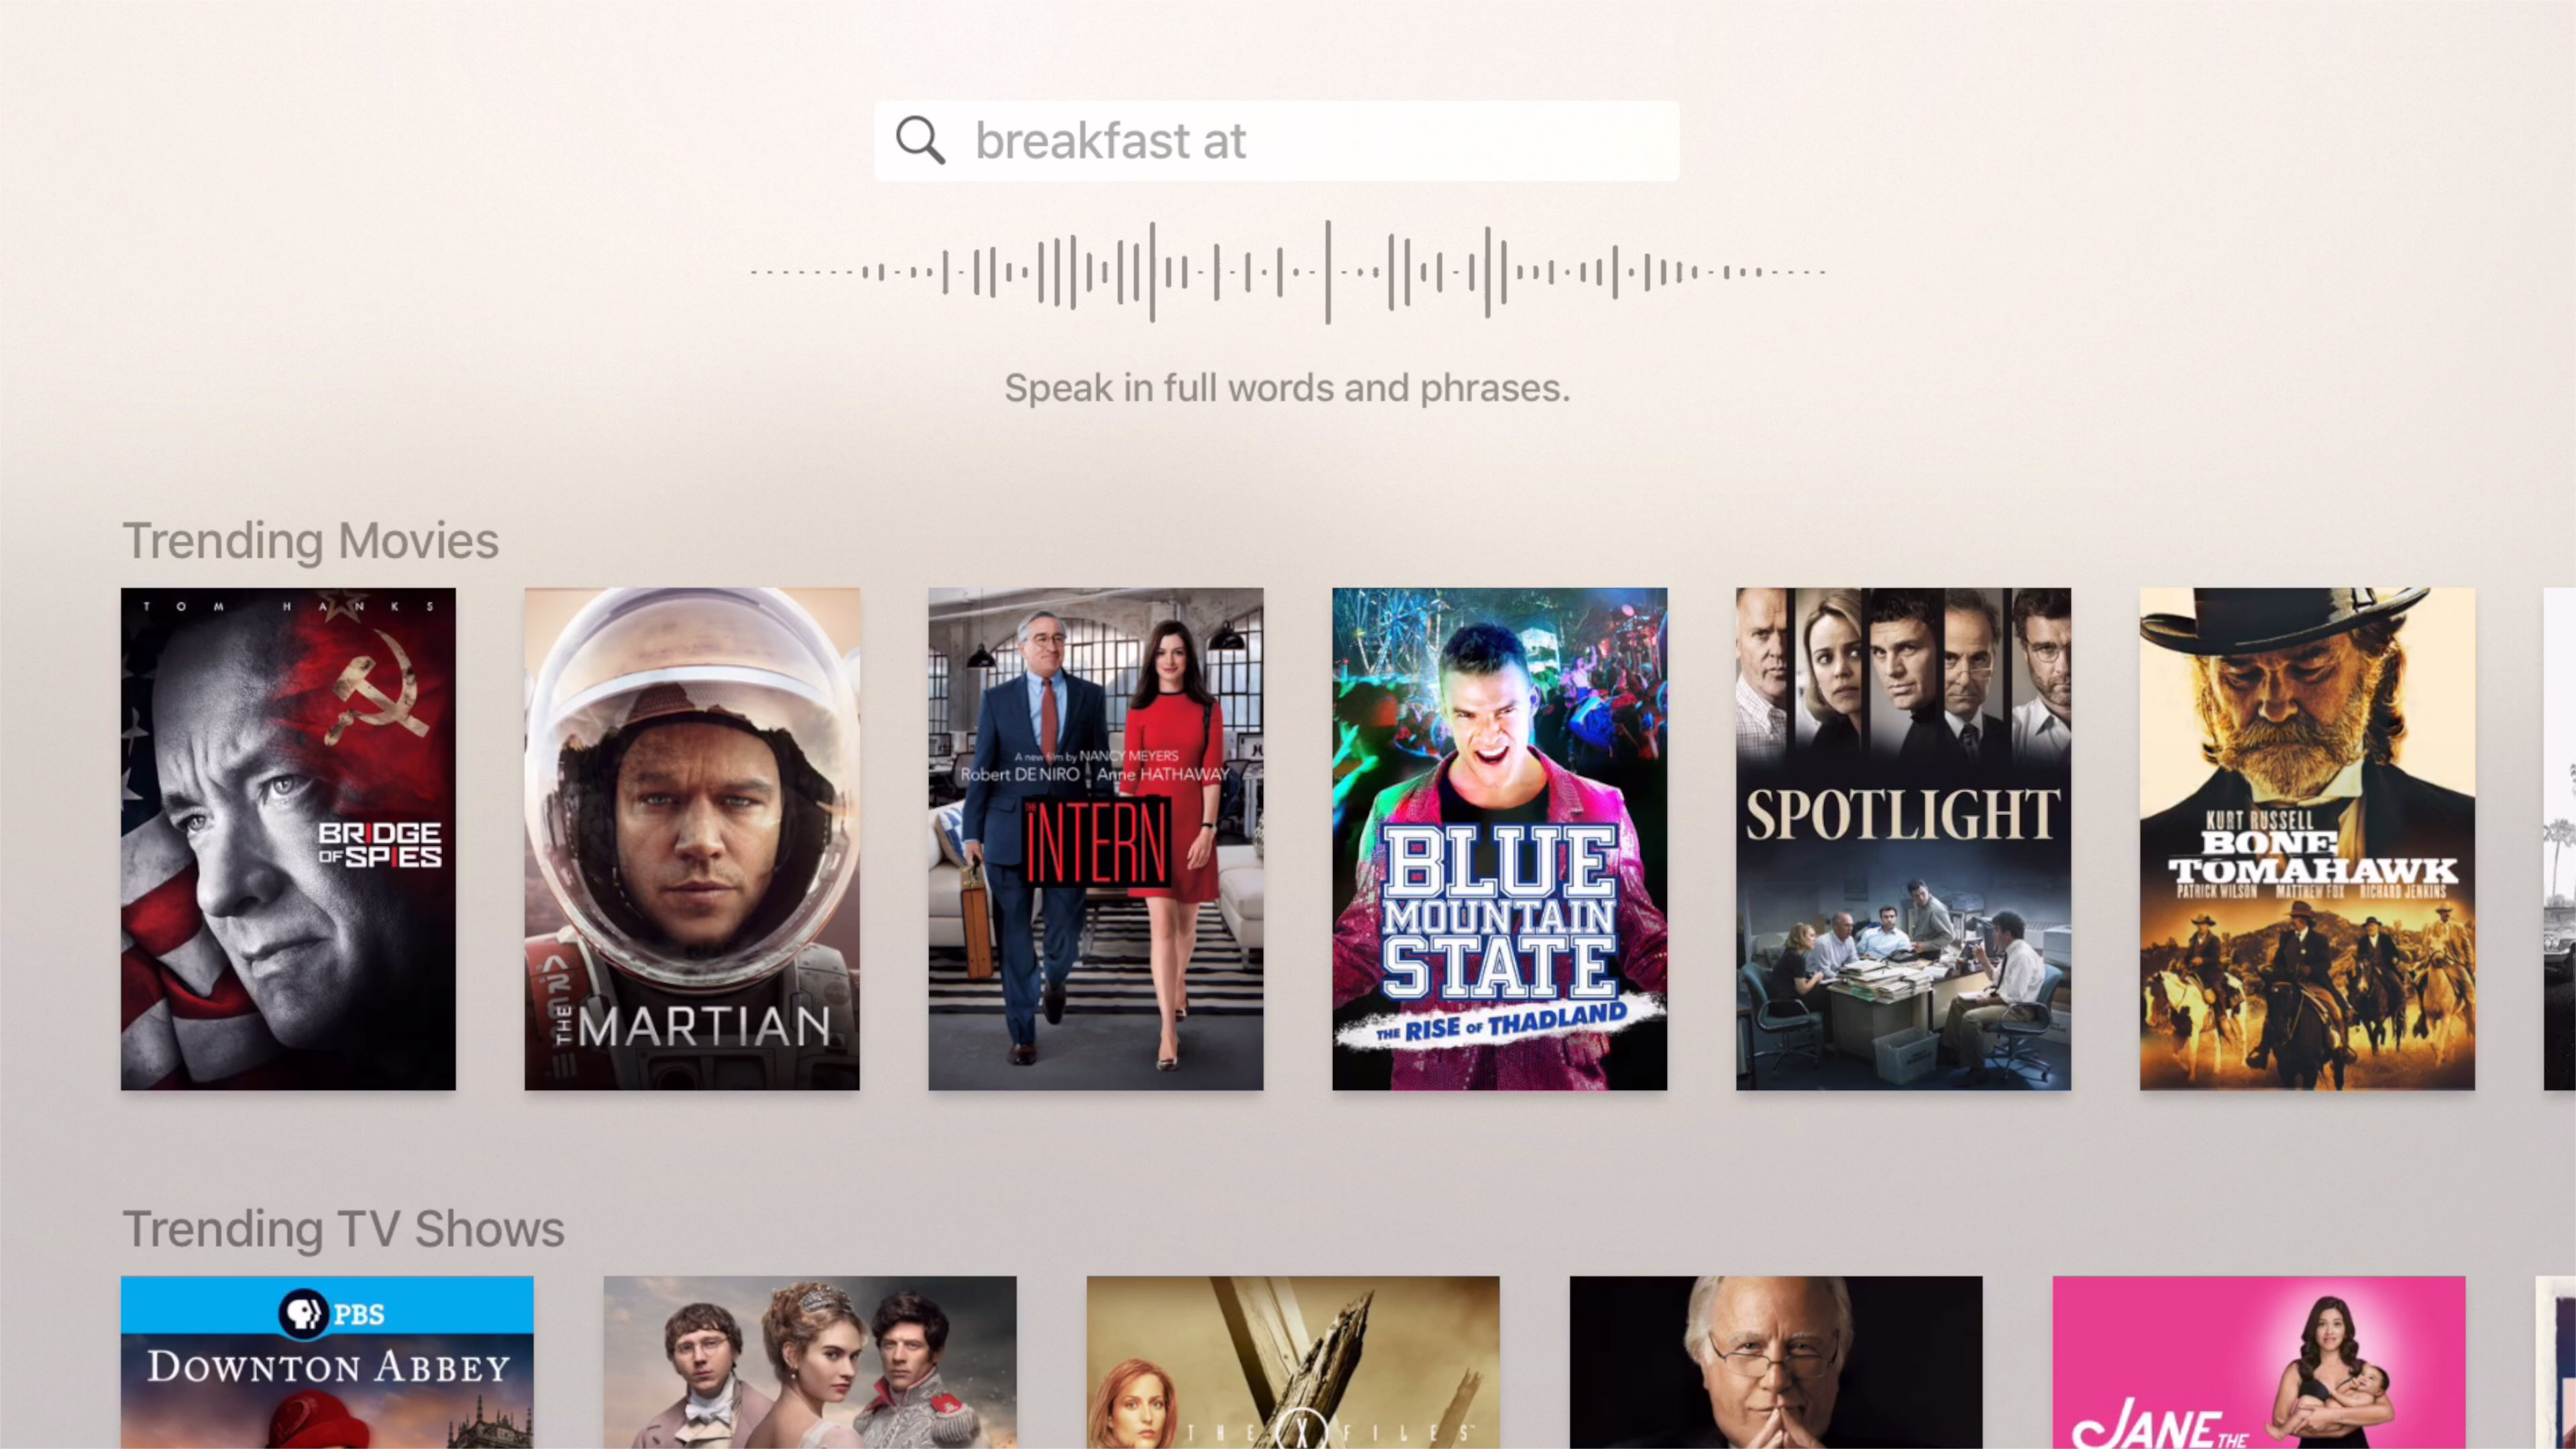 Dictation Apple TV 9.2 beta 3